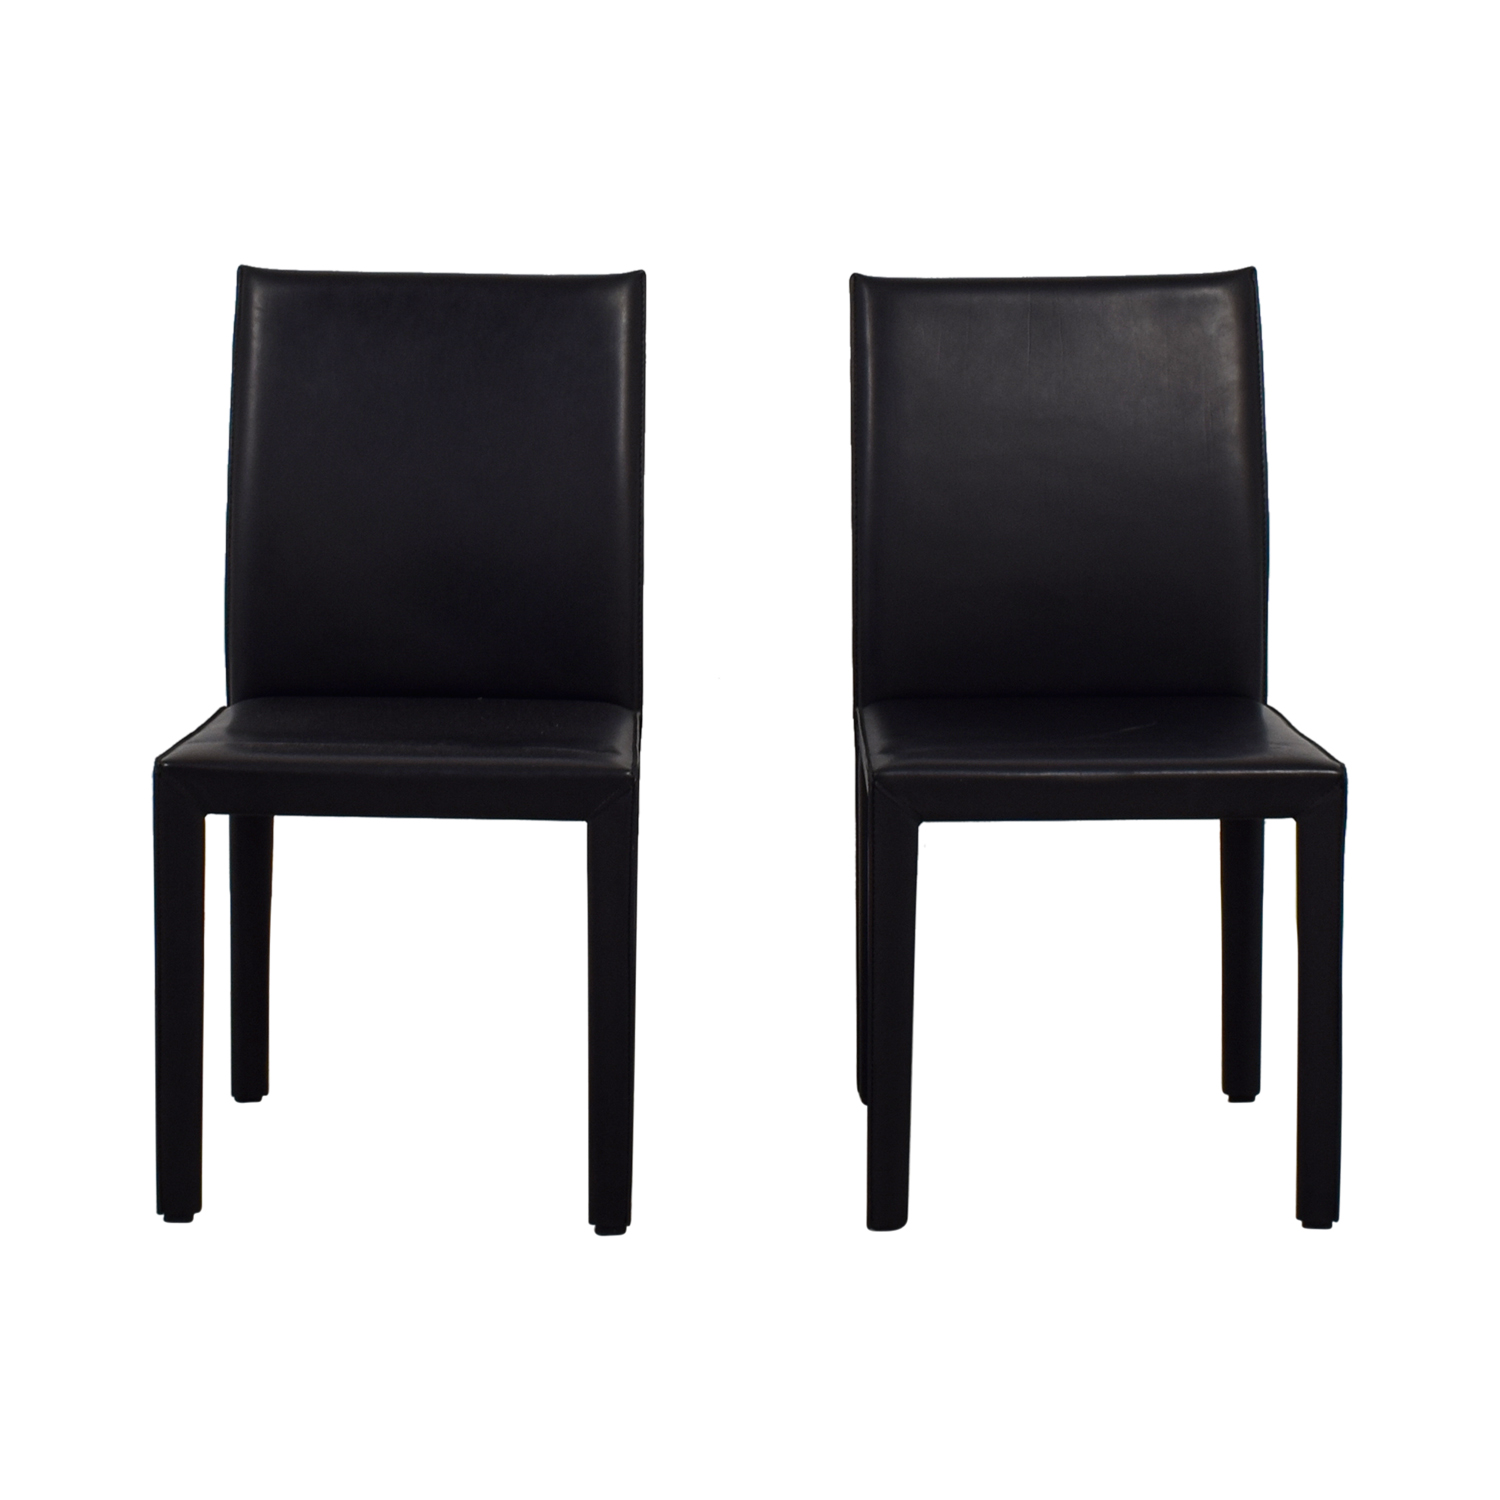 Maria Yee Mondo Black Leather Side Chairs / Dining Chairs